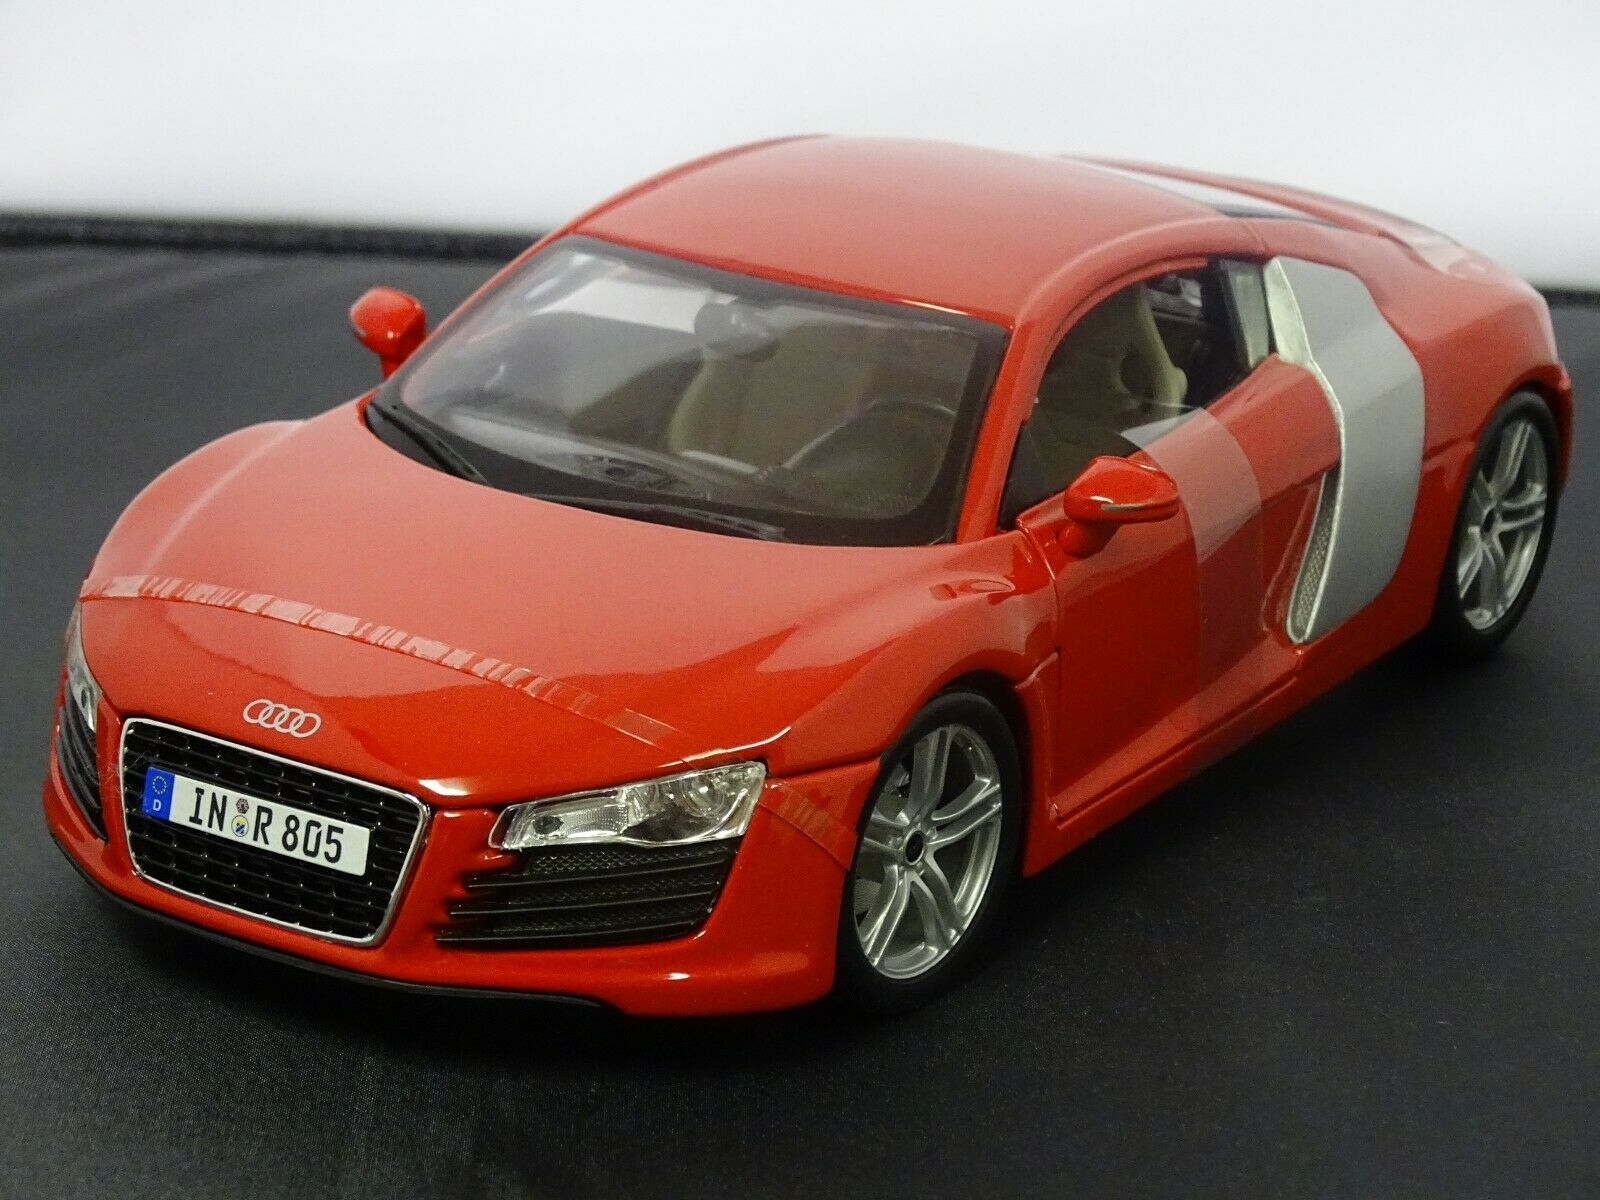 AUDI R8 COUPE rot DIECAST MODEL SUPERB DETAIL 1 18 SCALE